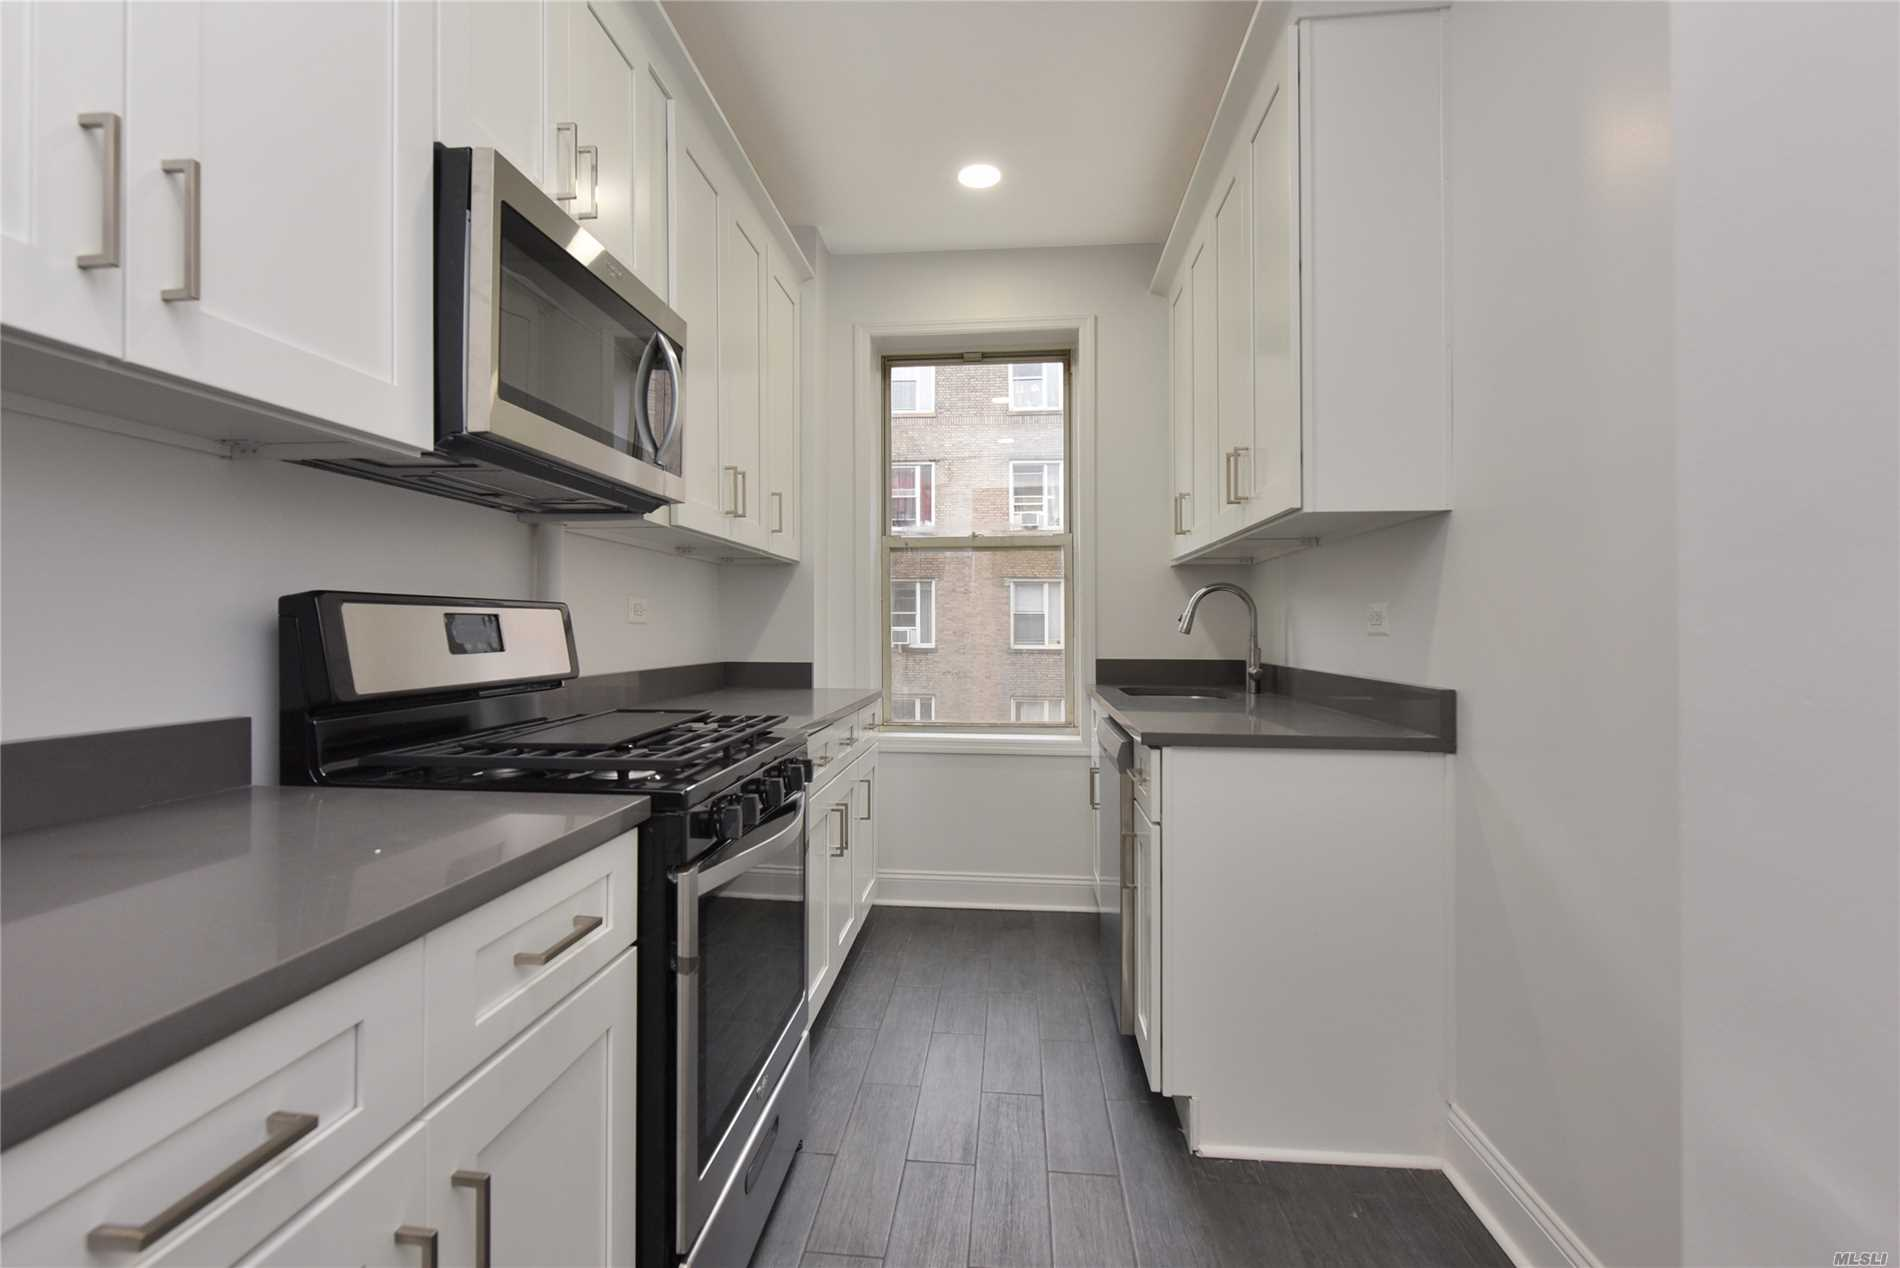 No Board Approval-Sponsor Unit! 3rd Floor, Sunny, Fully Renovated 2 Bedroom, 1.5 Bathroom Apartment With Hardwood Floors Throughout, High Ceilings, Lots Of Closets. Located Half A Block To The 7 Train Station. Near All. Great Location. A Must See!